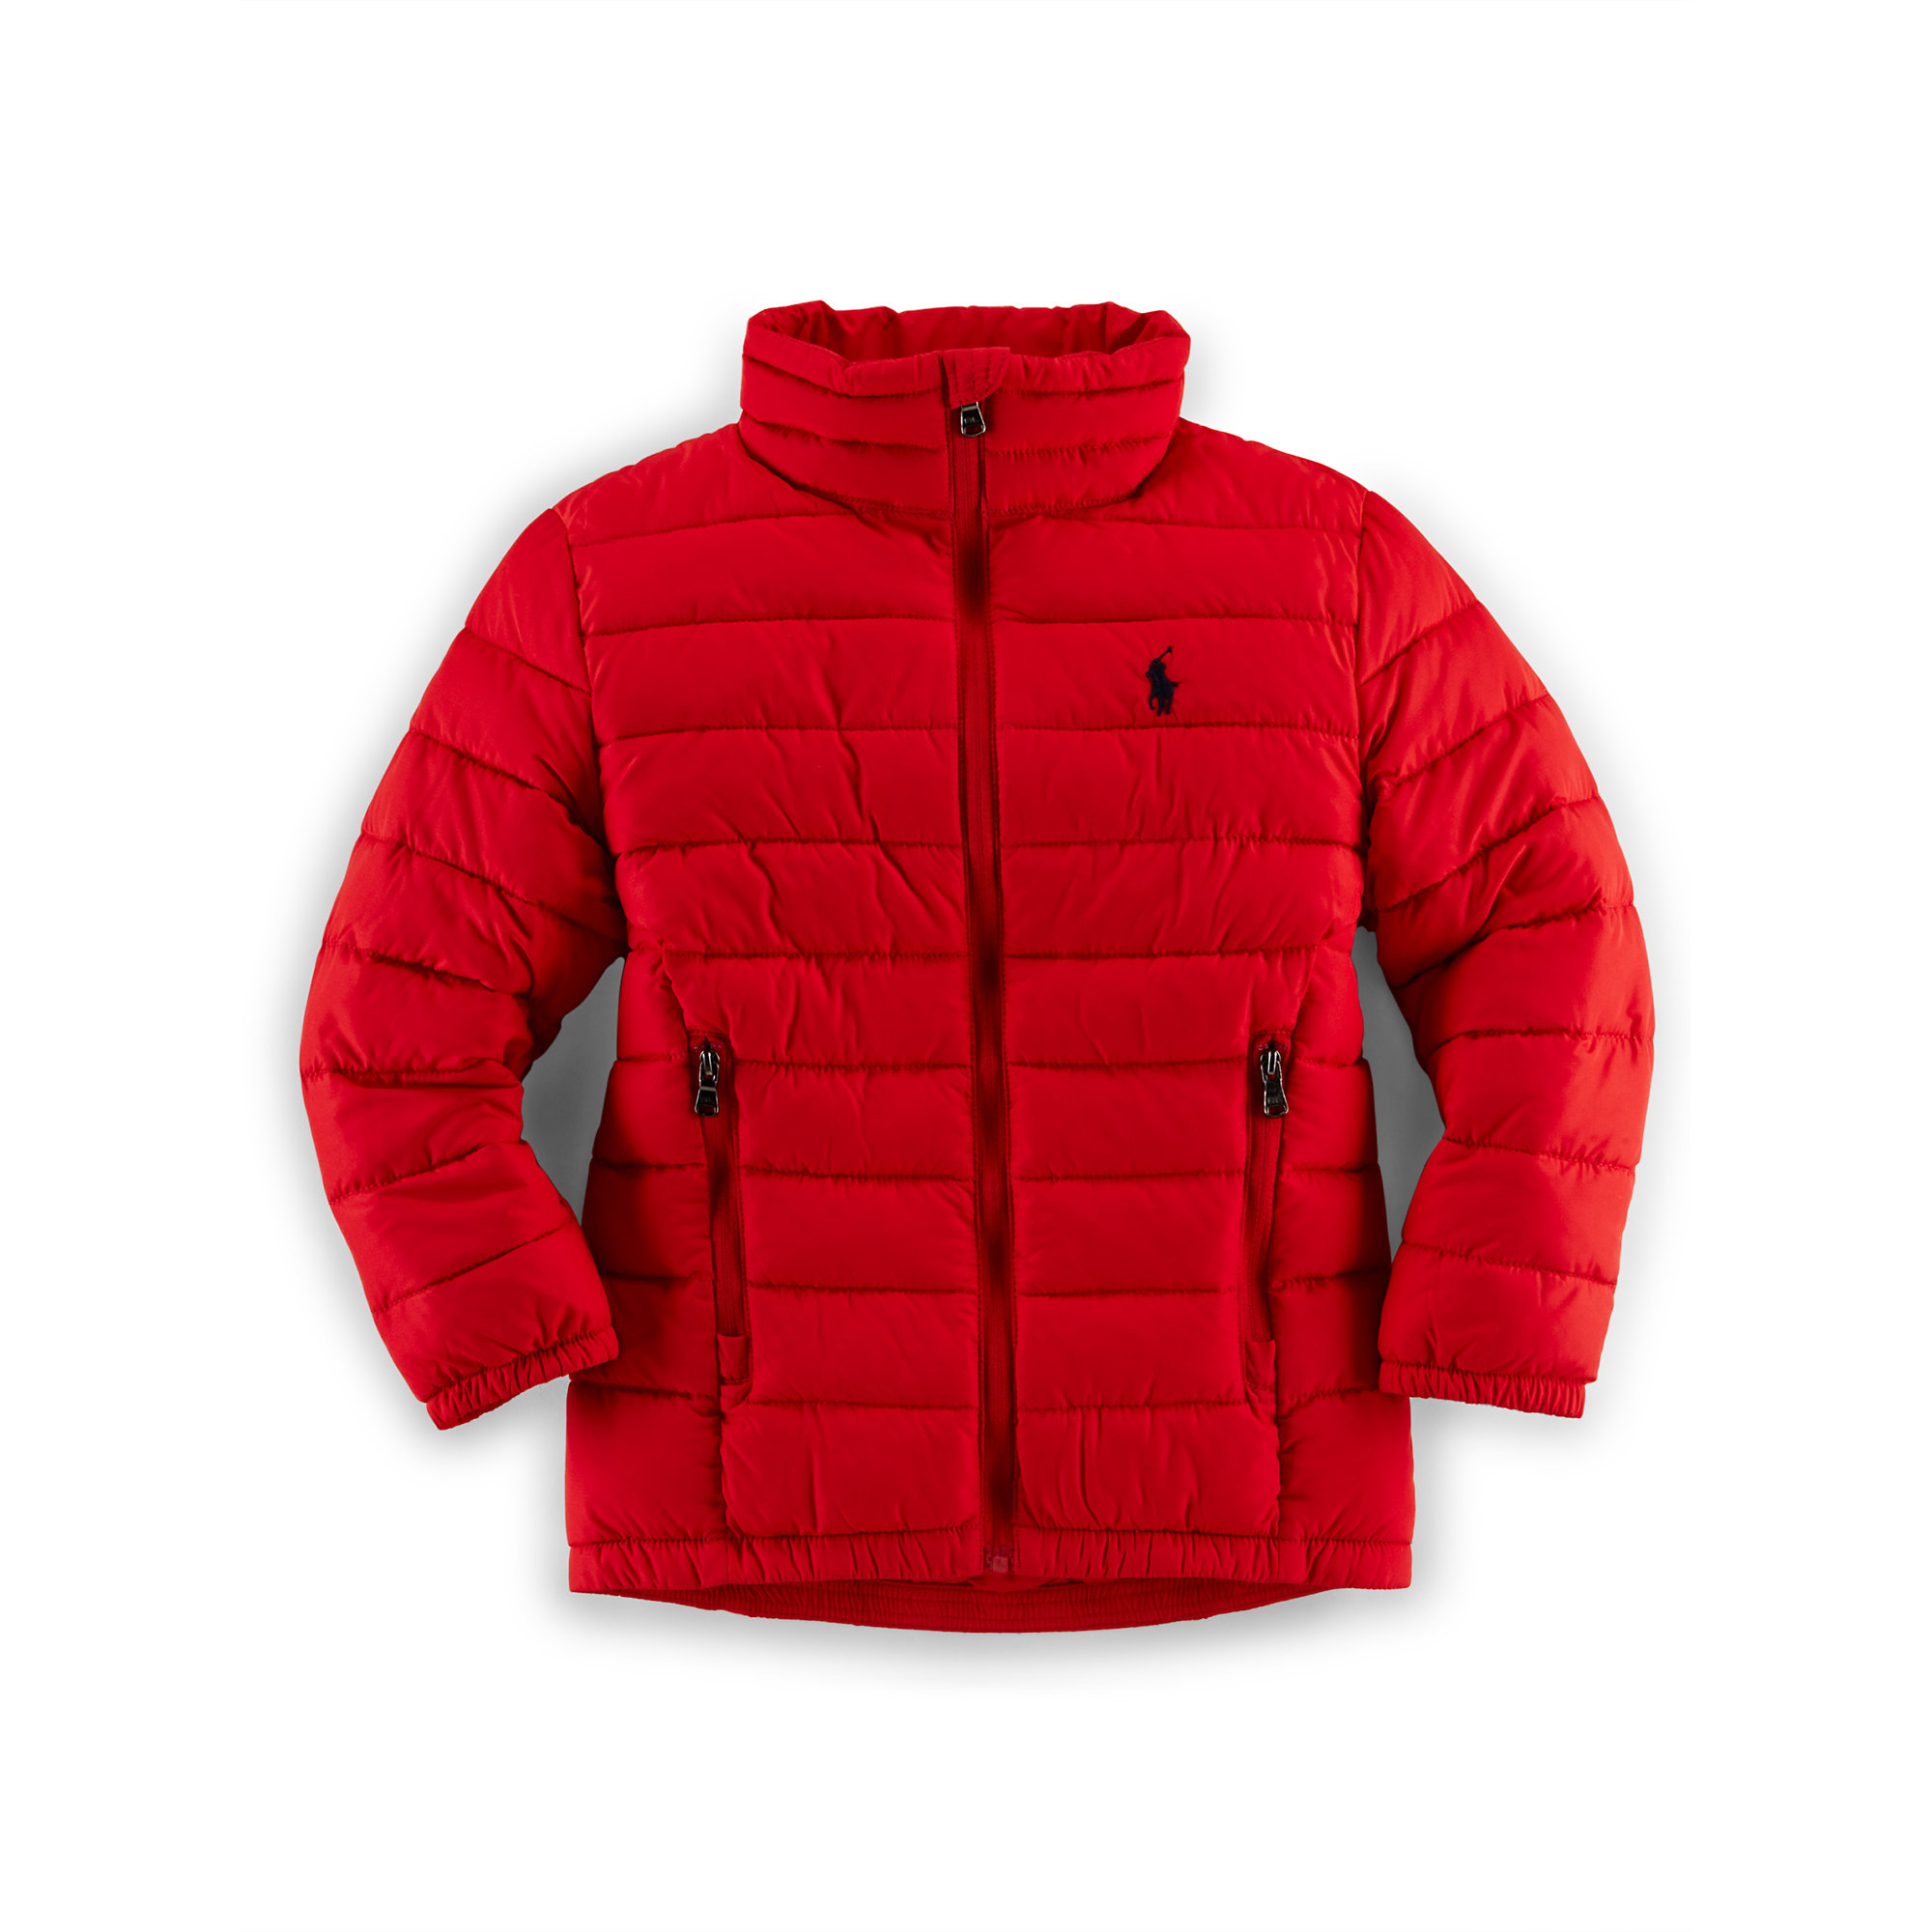 Ralph lauren Lightweight Puffer Jacket in Red | Lyst